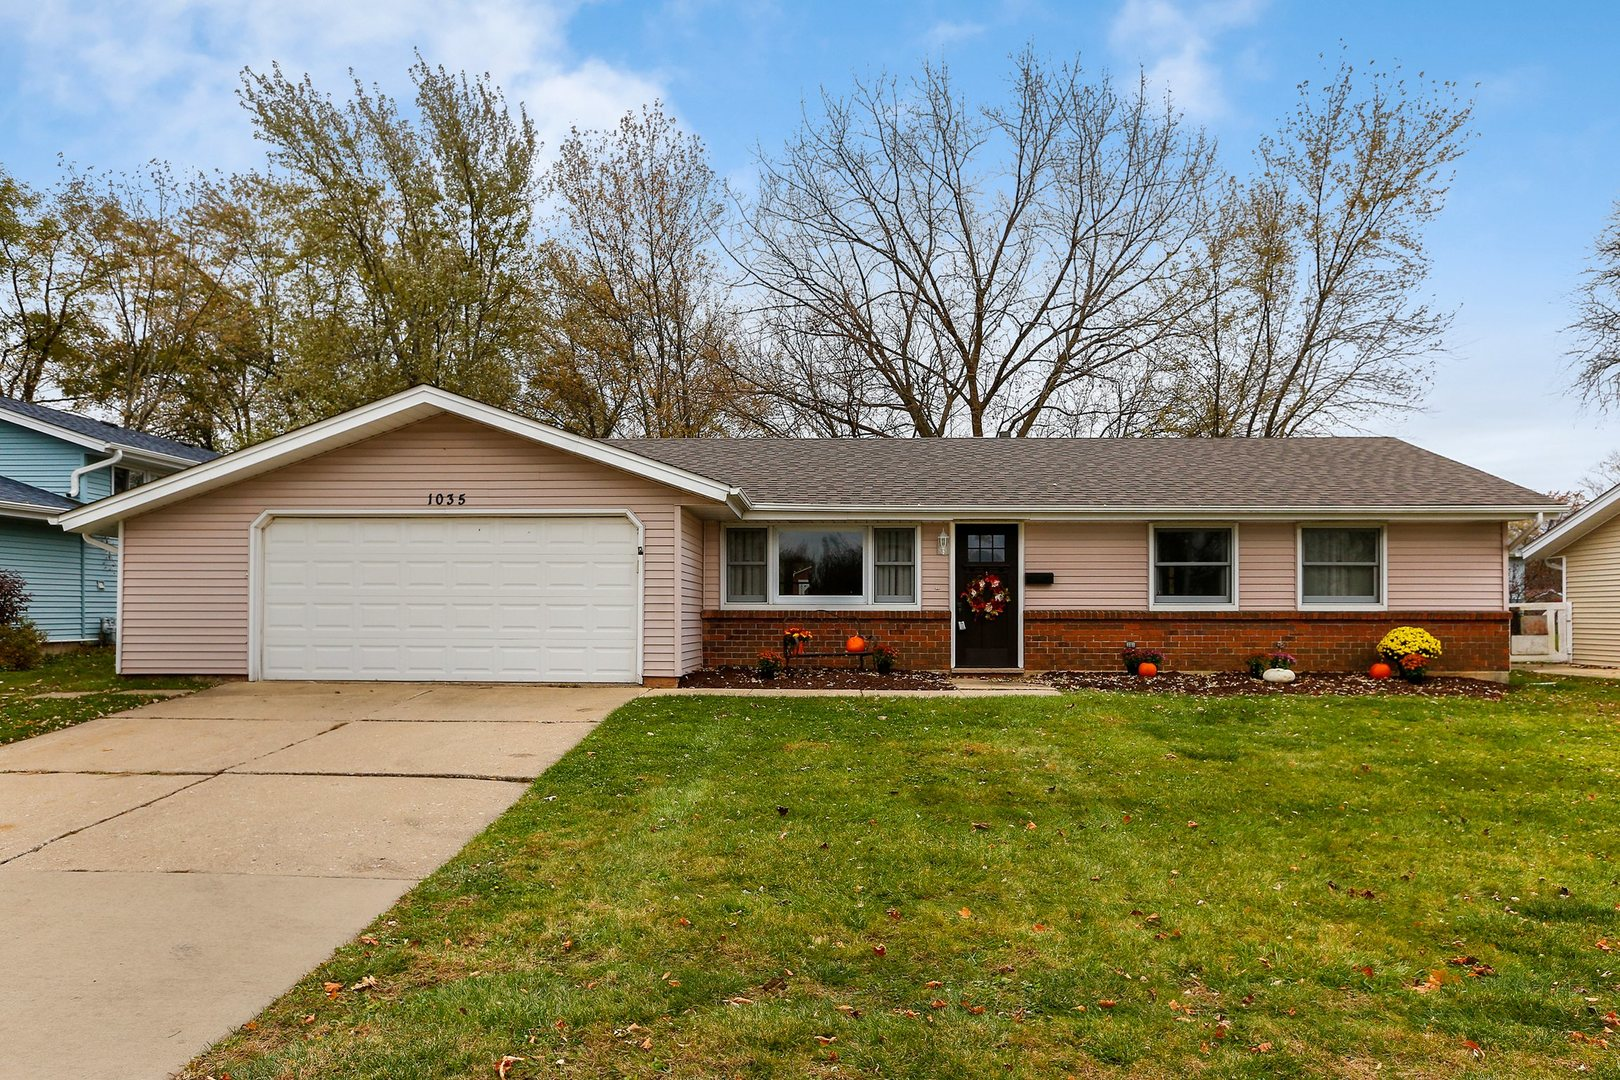 1035 West Weathersfield Way, Schaumburg, Illinois